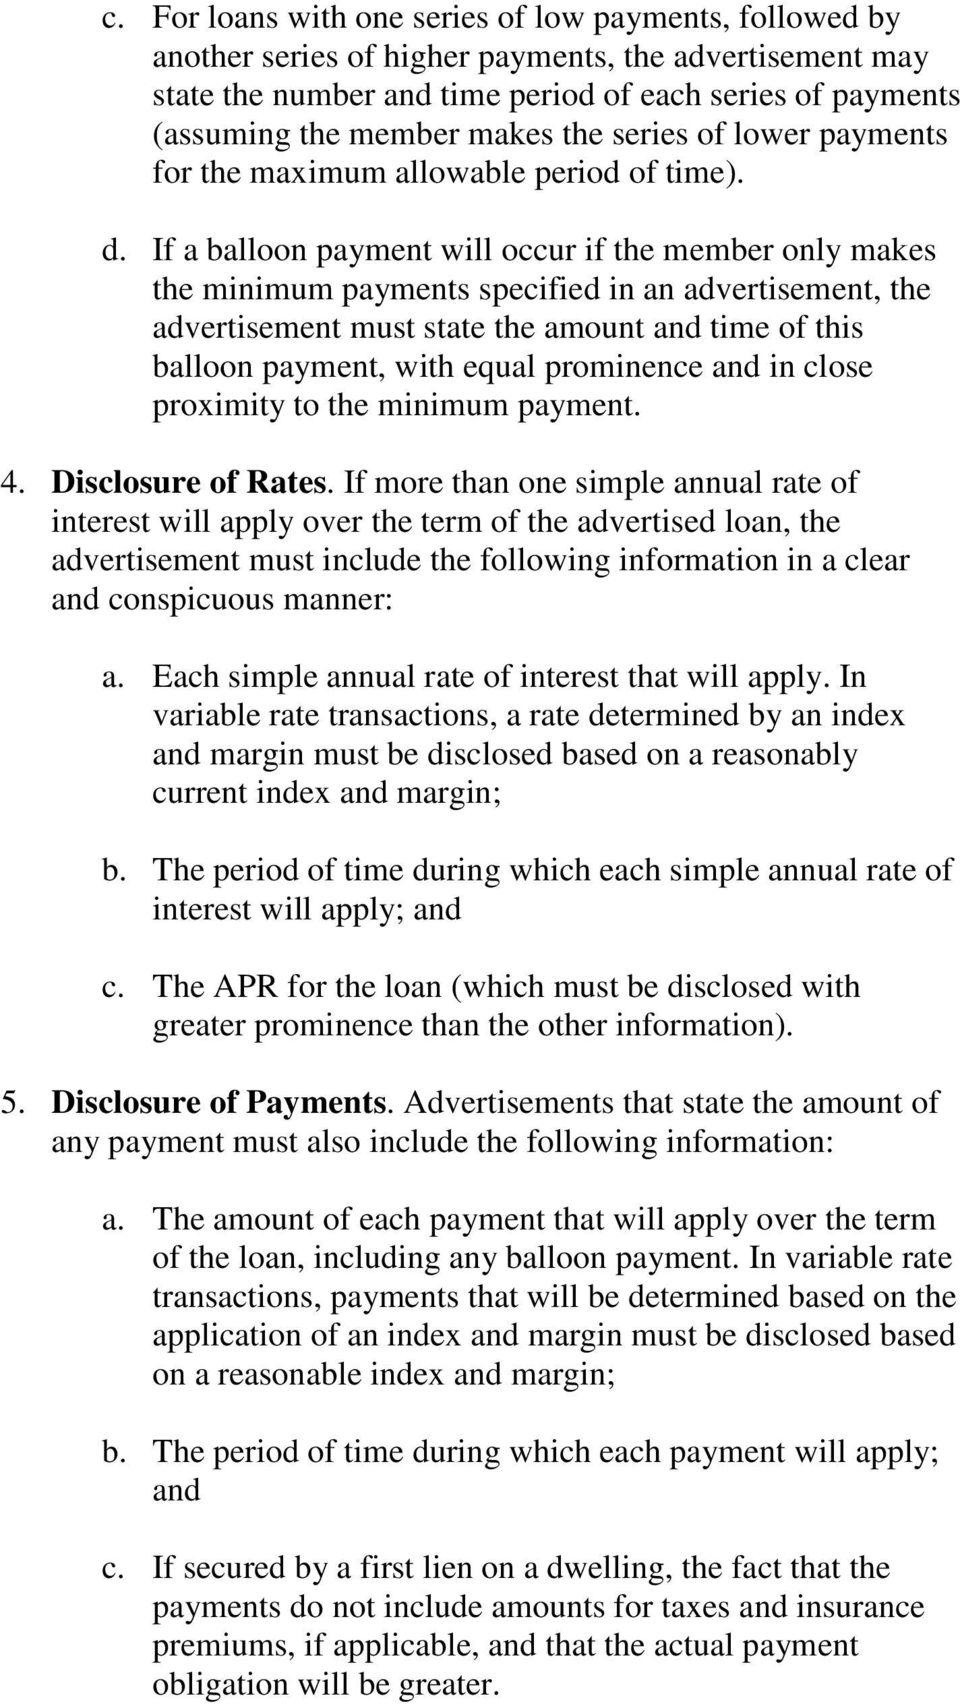 If a balloon payment will occur if the member only makes the minimum payments specified in an advertisement, the advertisement must state the amount and time of this balloon payment, with equal